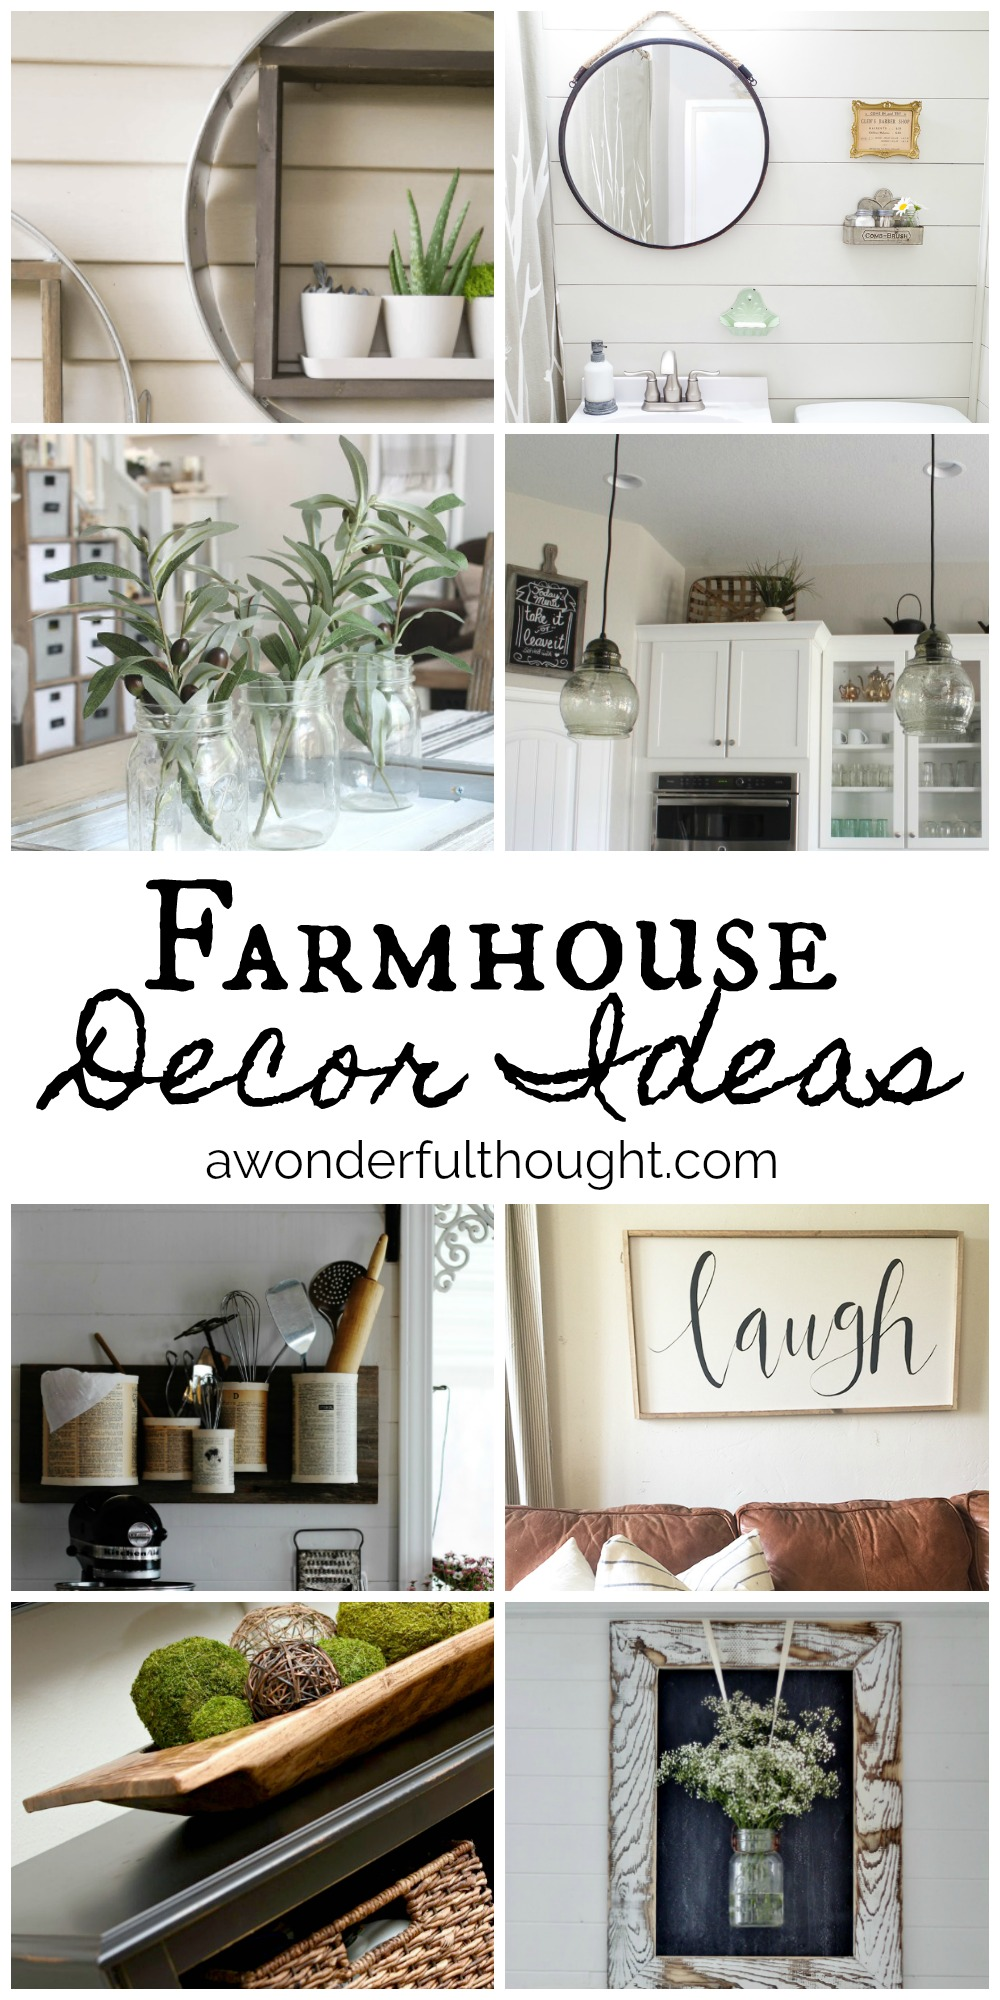 living space urban awesome ideas decor your accentuate rustic to home pertaining farmhouse